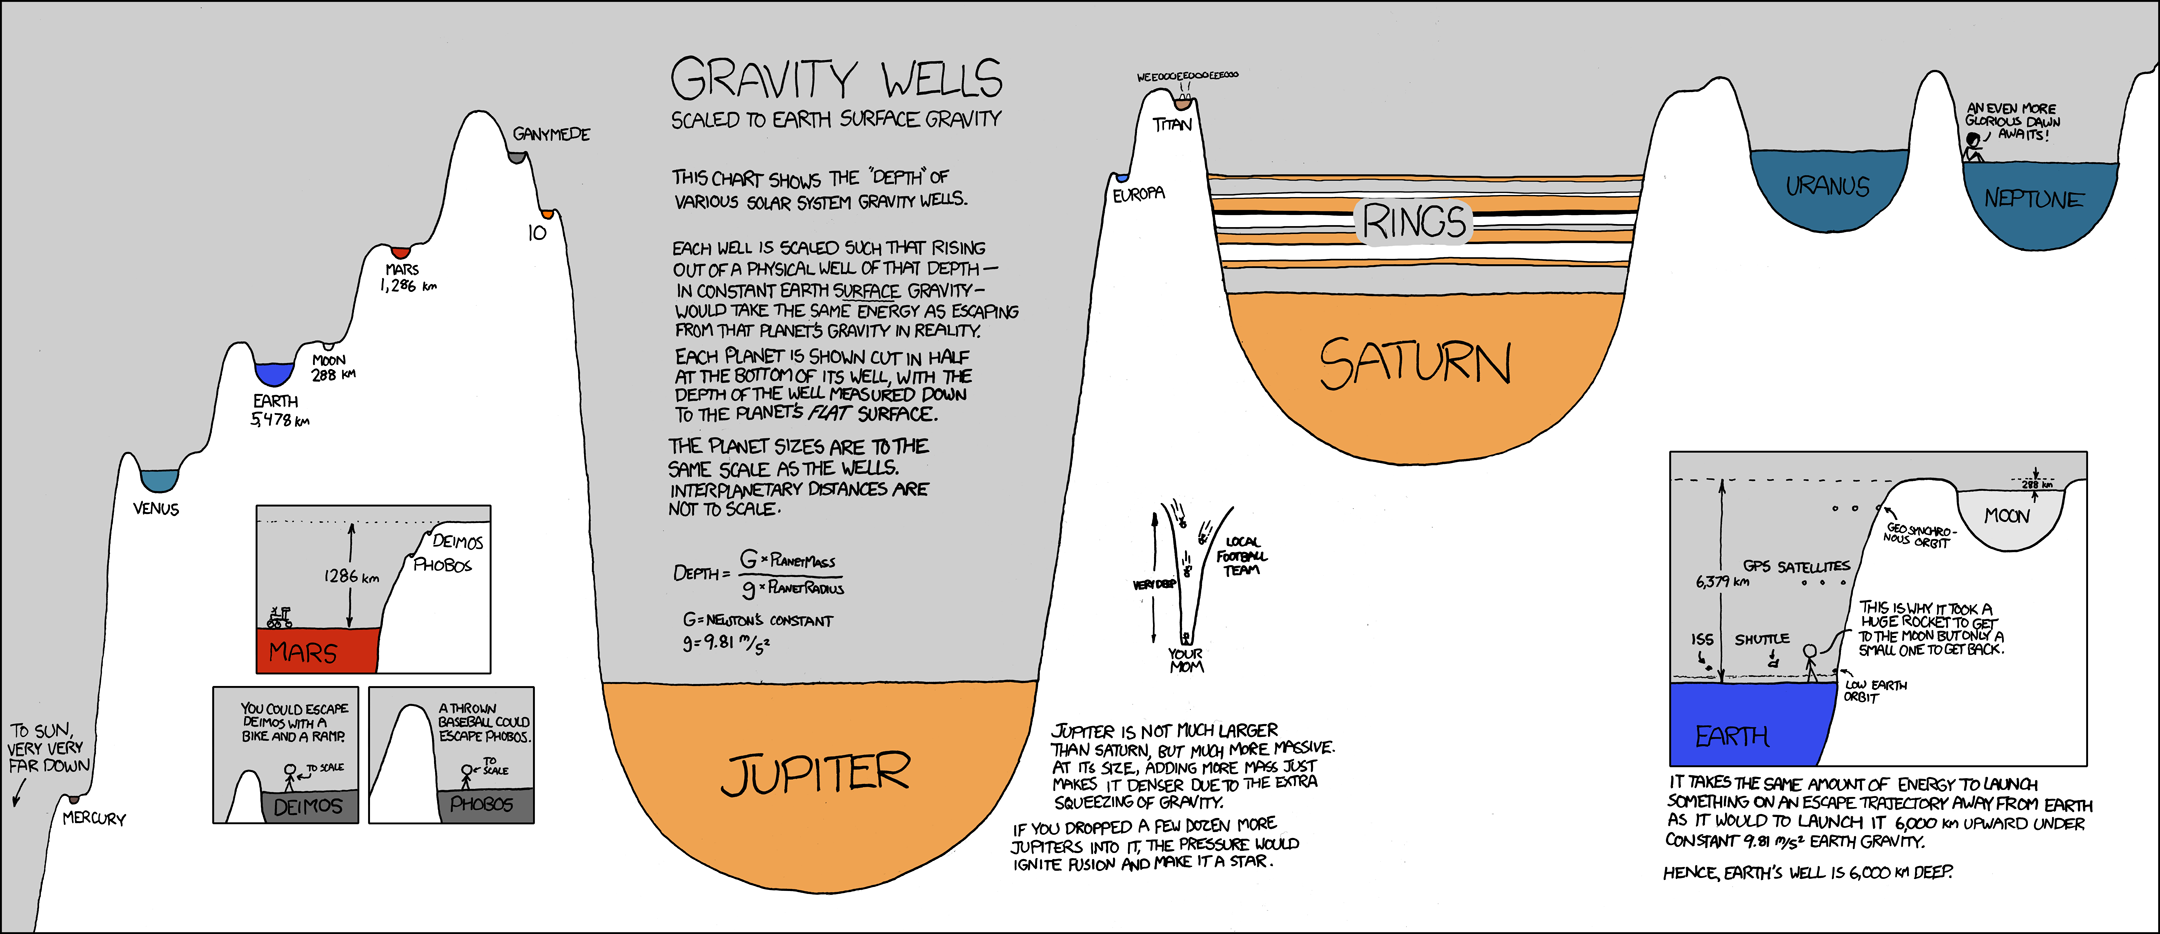 Comic from xkcd about Gravity Wells